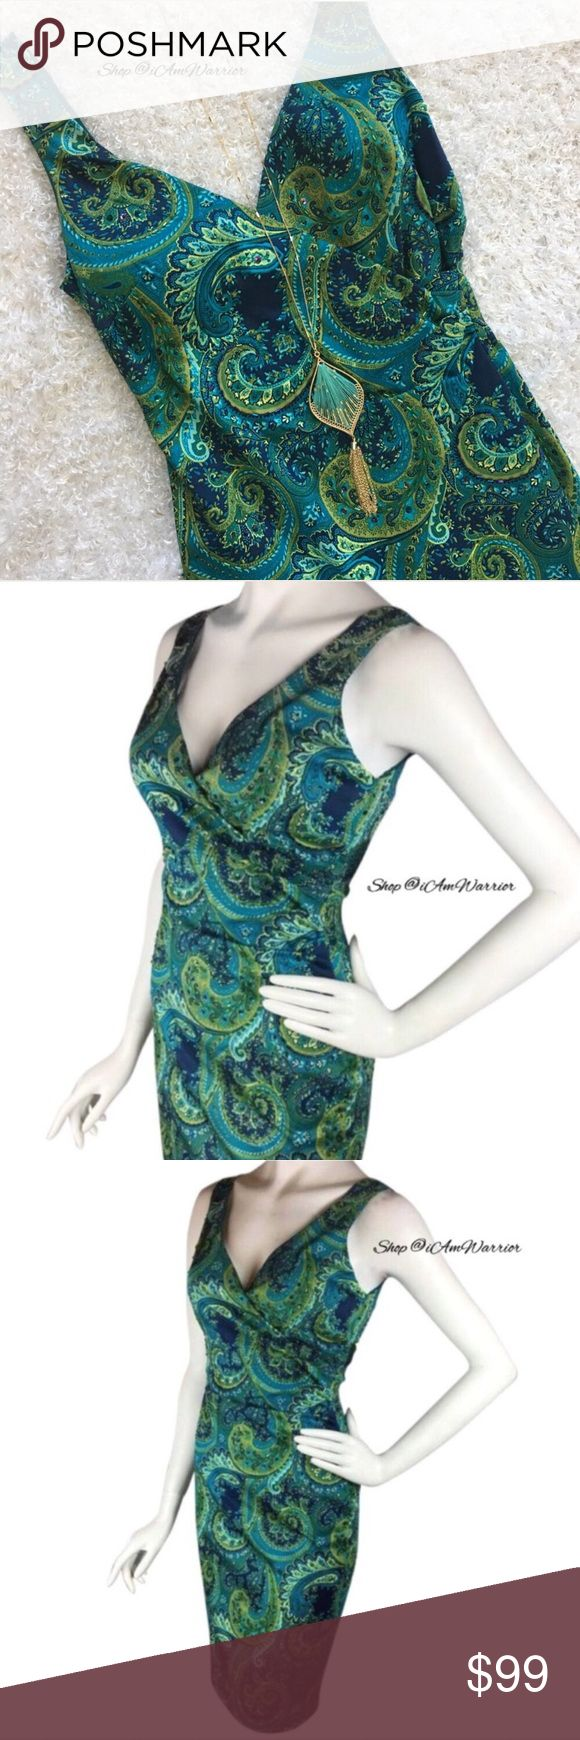 NWT teal paisley stretch satin beaded dress Beyond gorgeous teal print fitted Muse dress with ruched fitted silhouette. Has tiny beading throughout. Brand new with tags, never worn, smoke free house. Dress has lightly padded/lined bust so no bra is needed. A couple popped seams on kick pleat as shown (an easy fix w/ few quick stitches). Brand new with tags. Necklace not included. From Lord & Taylor, retailed at $174. Please read updated bio regarding closet policies prior to any inquires…